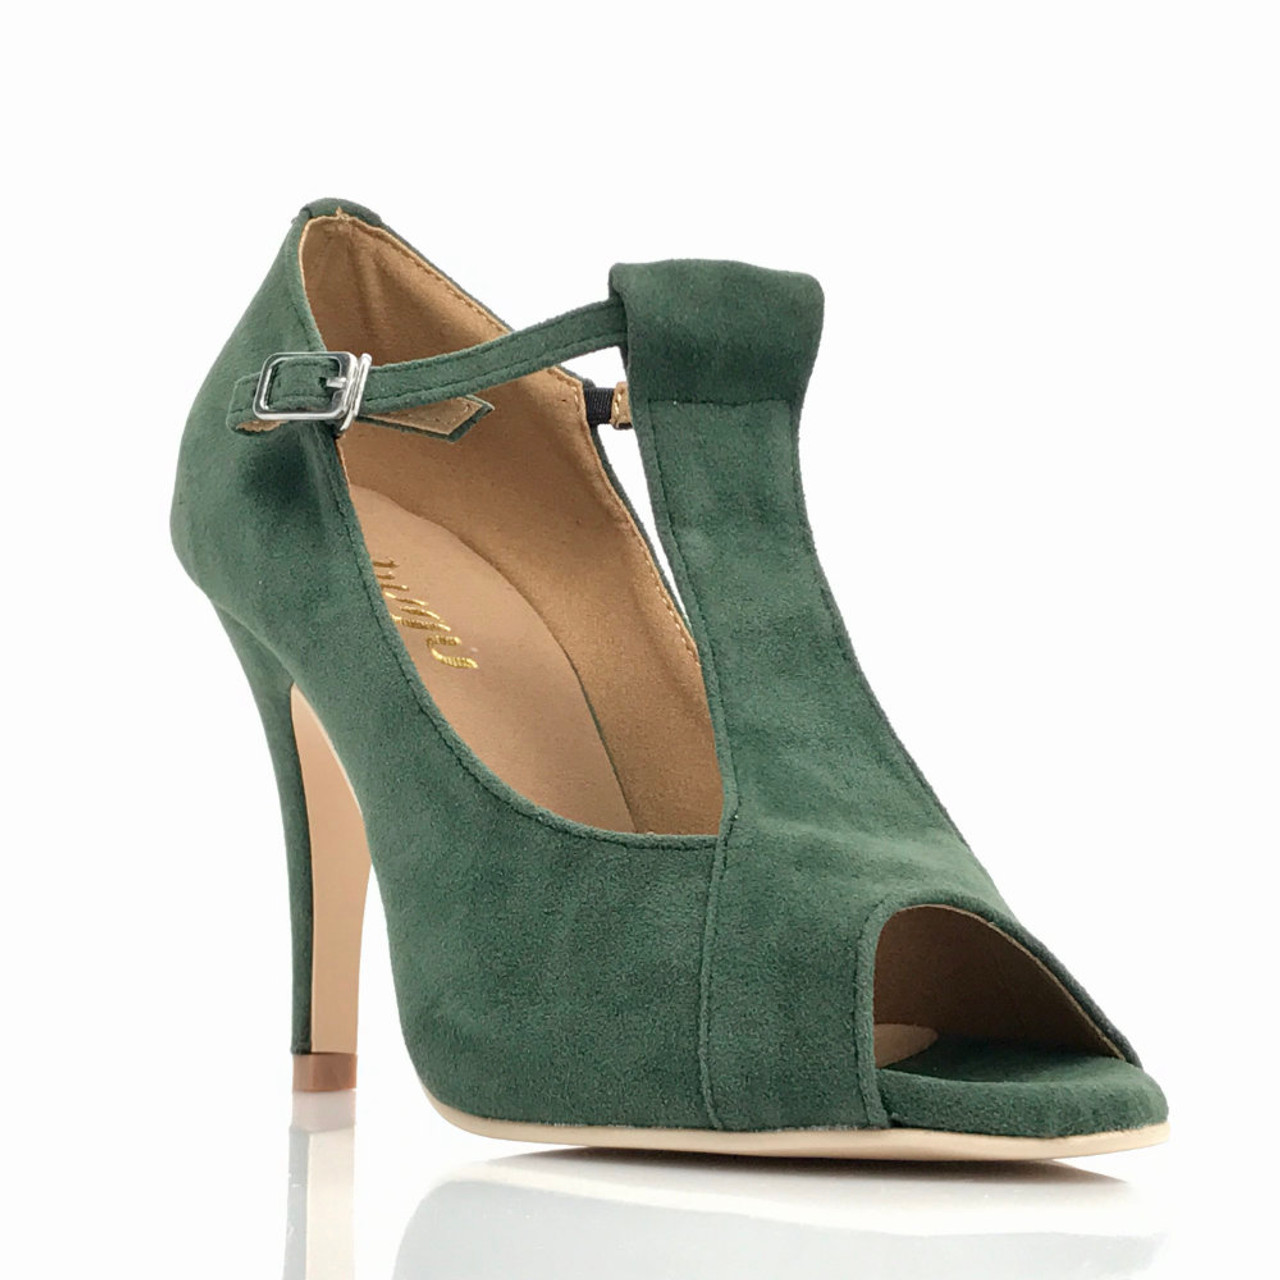 00cc47381 Garnet - Green Faux Suede Open Toe T-Strap Stiletto - 4 inch Heels - Burju  Shoes